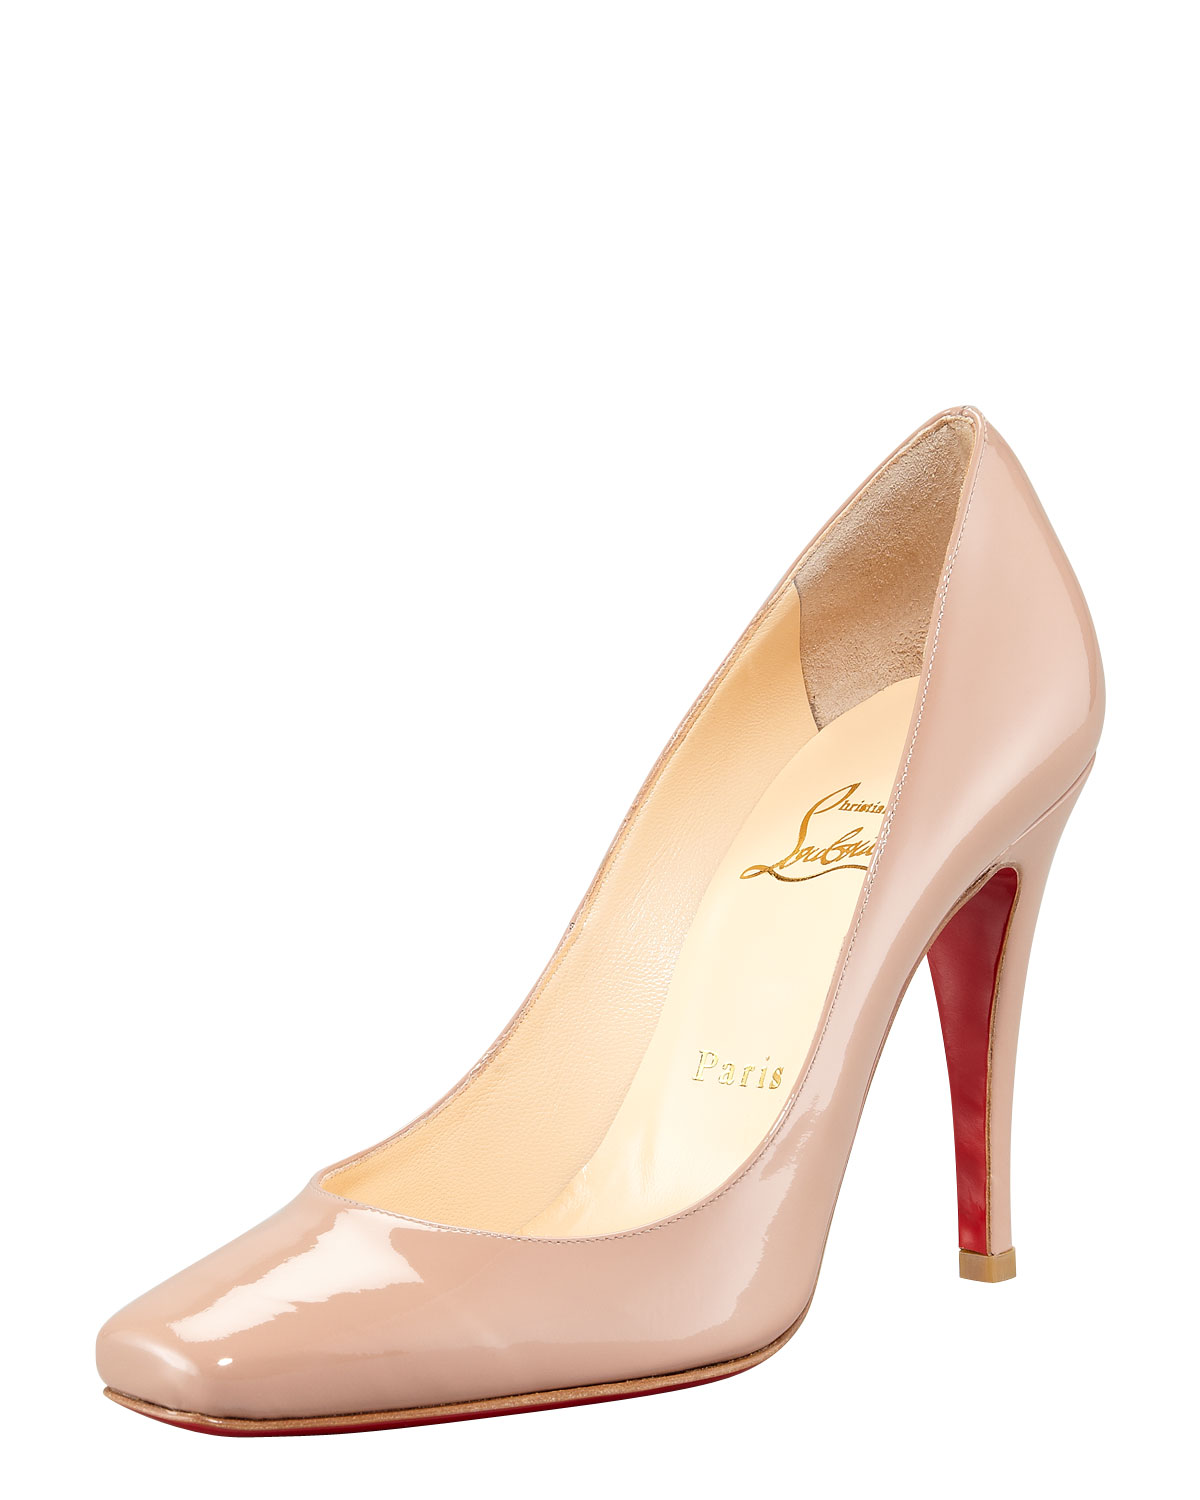 d5be9f0a47d ... christian louboutin Particule square-toe pumps Black patent leather  covered heels ...